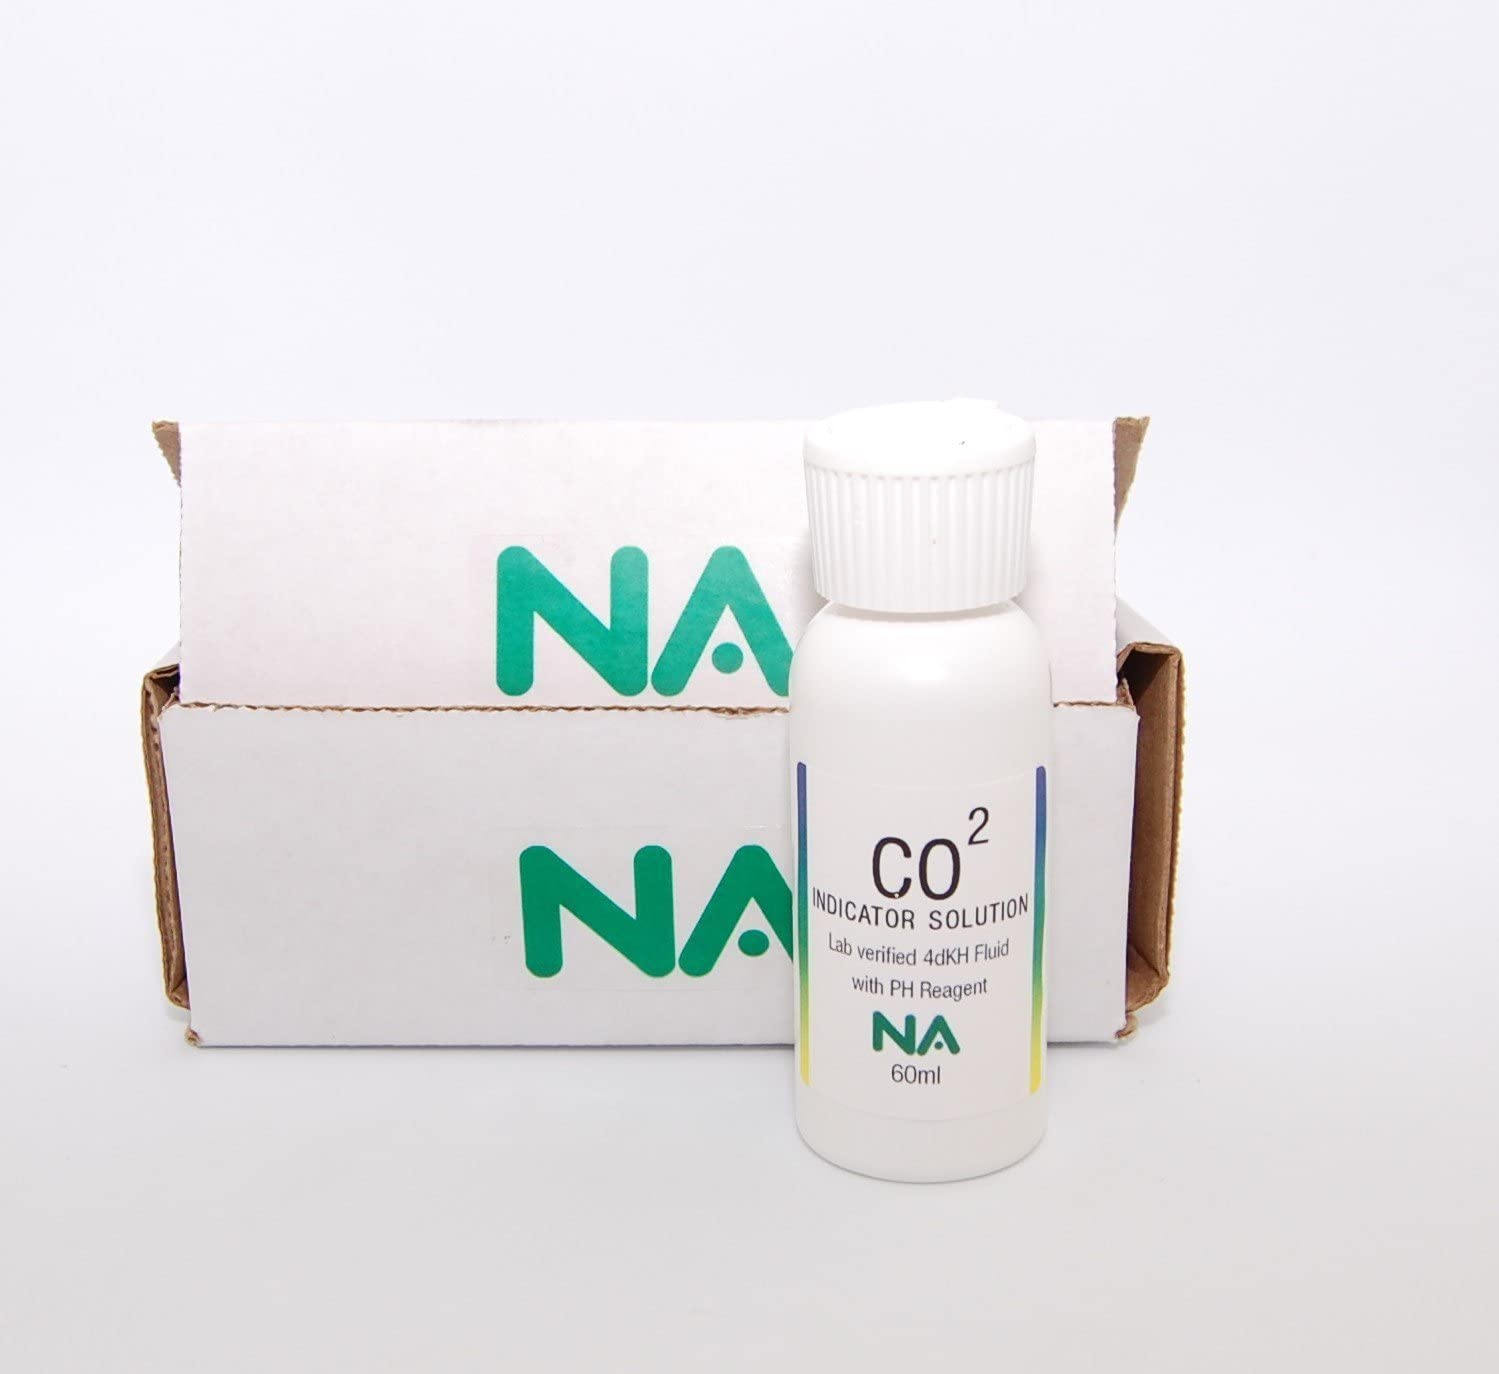 Co2 Drop Checker Solution | NilocG Aquatics | 4dKH/Ph Reagent For The Most Accurate Monitoring of Your Planted Tank Co2 Levels